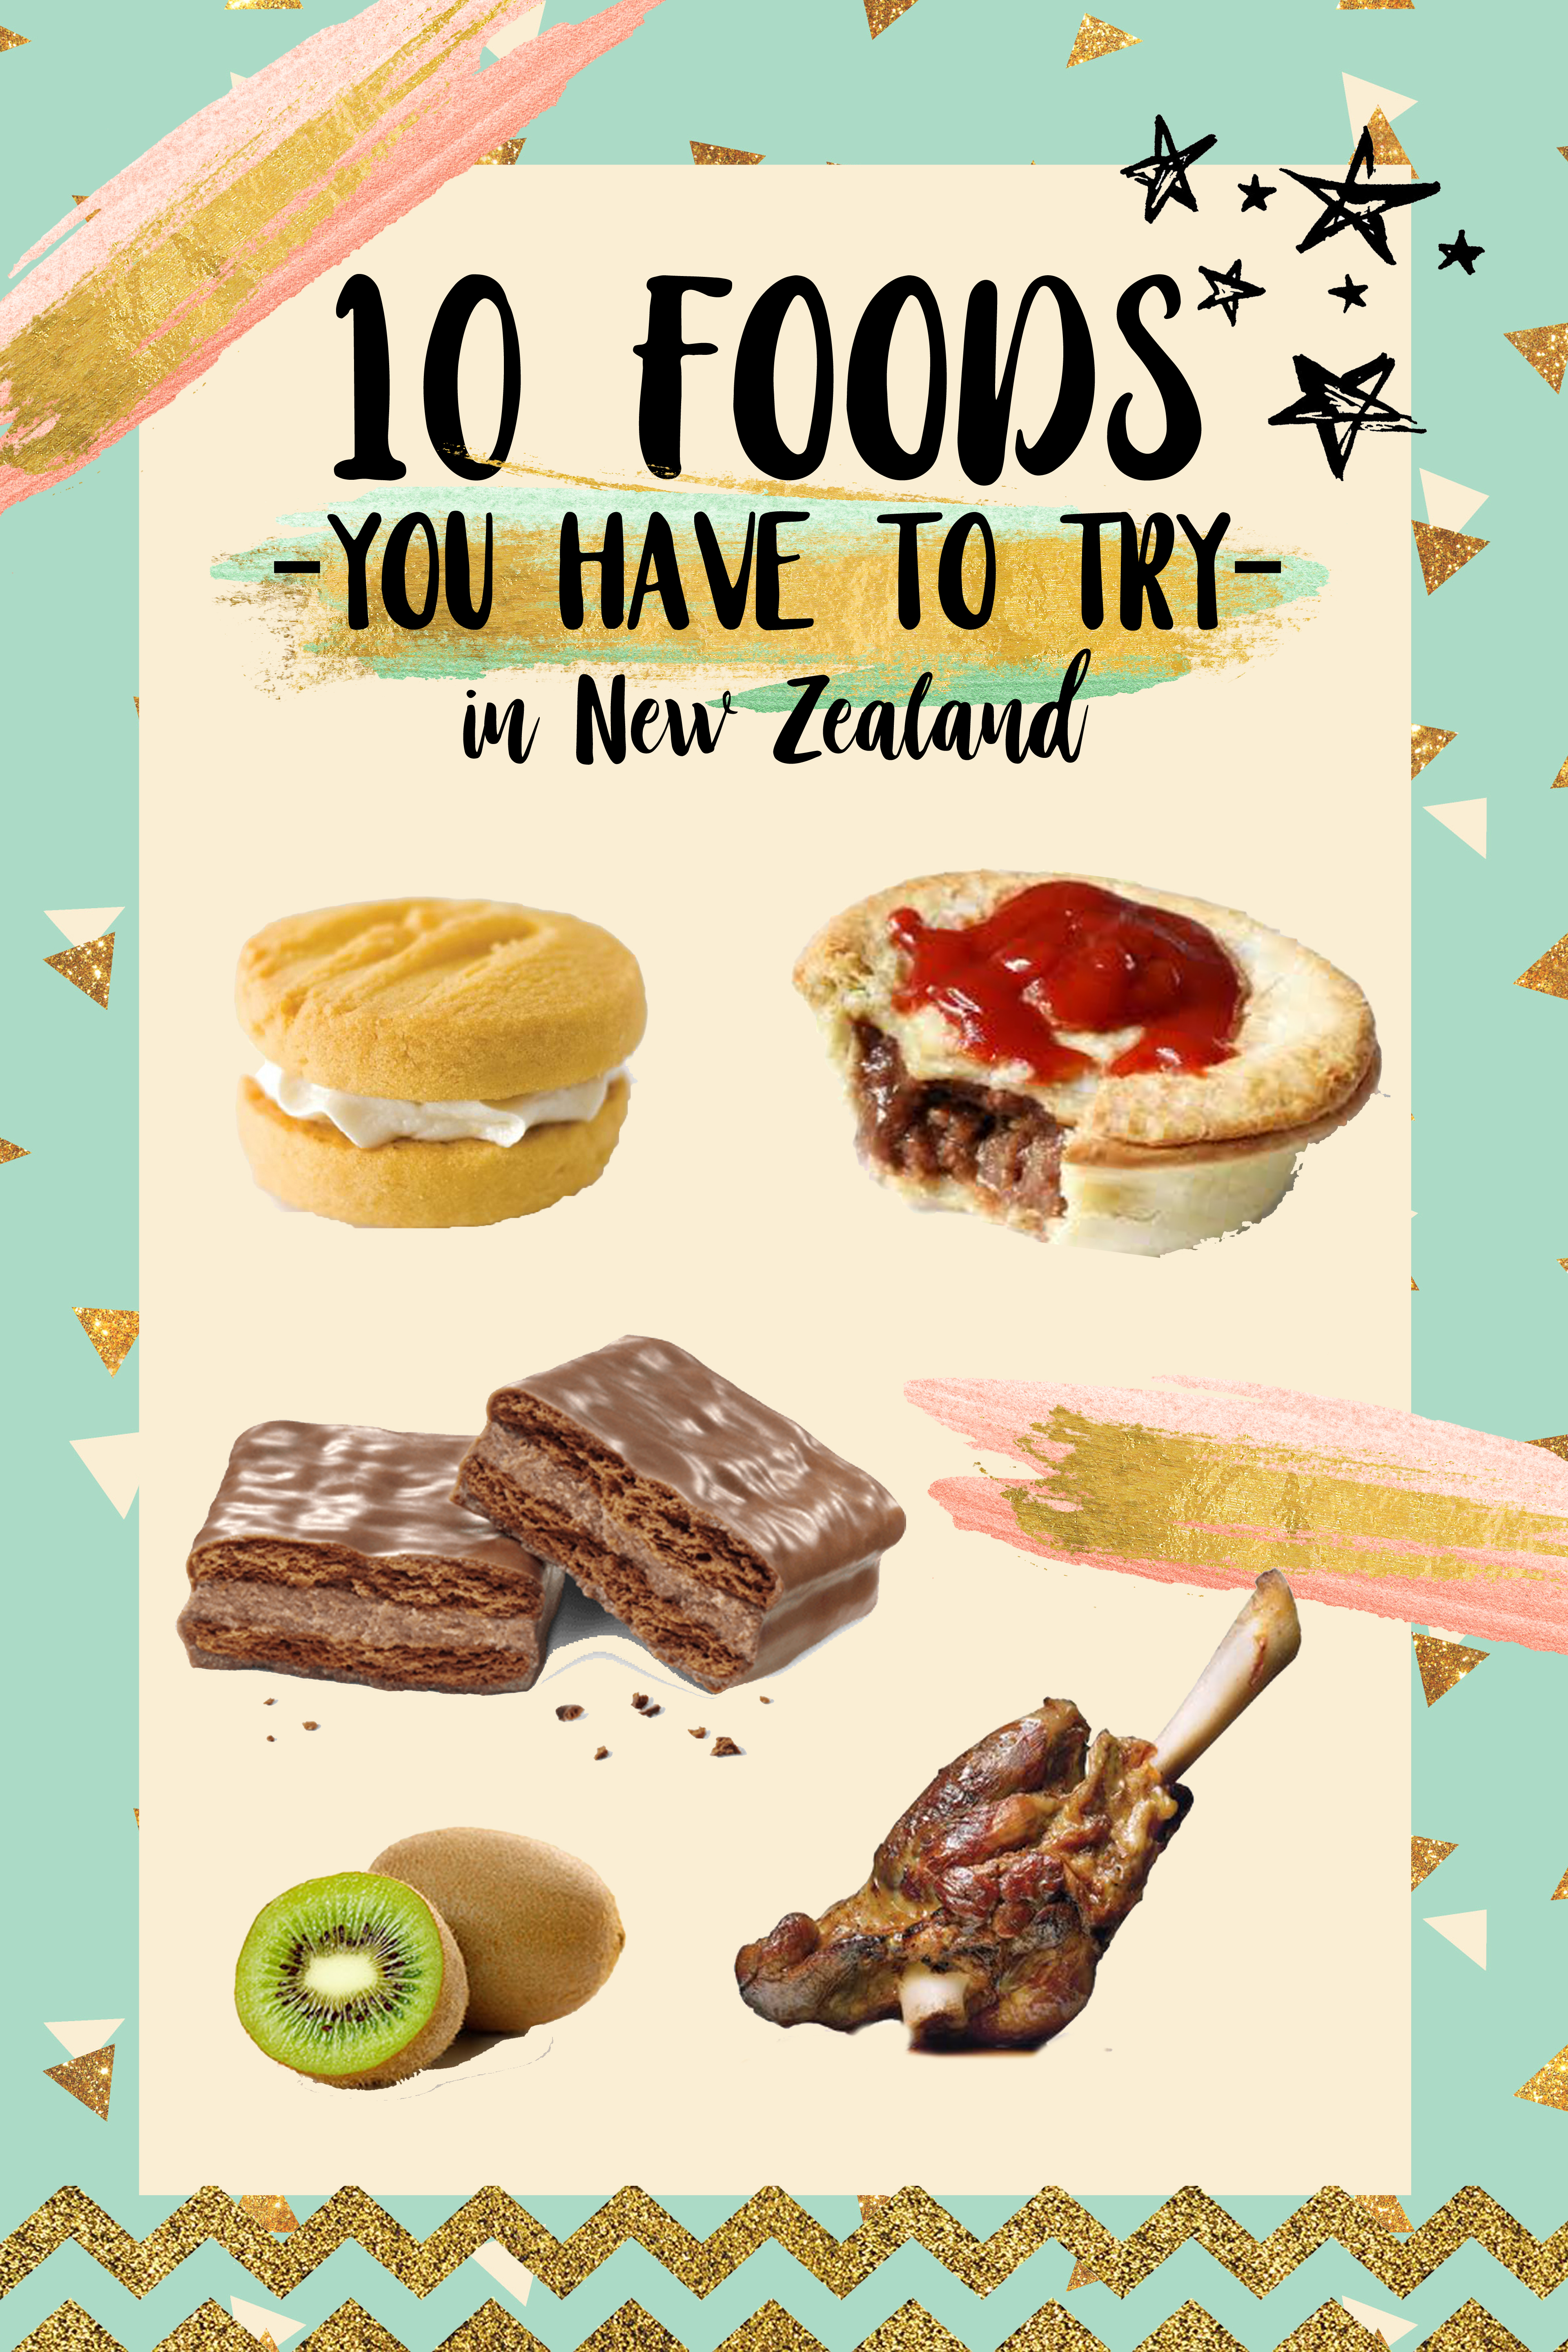 10 foods you have to try in New Zealand